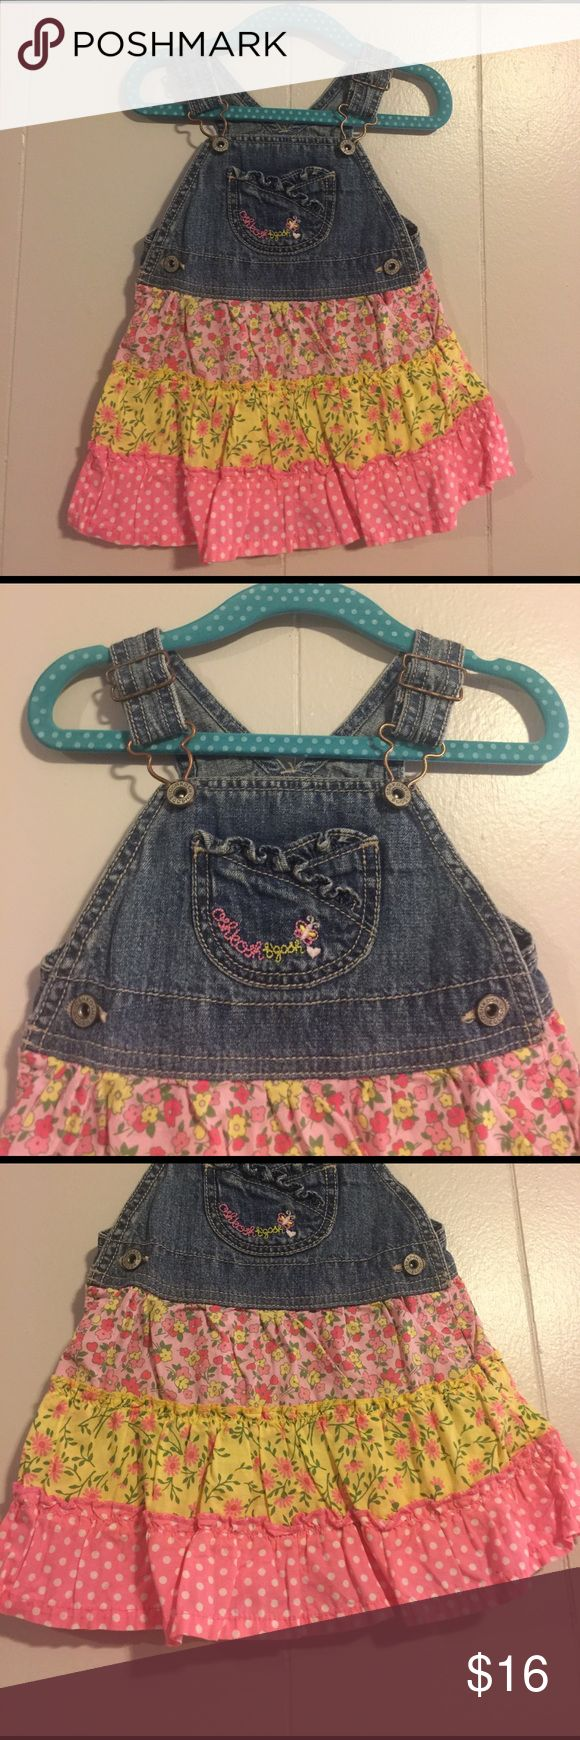 🌸🌺Adorable Osh Kosh B'gosh overall dress 🌺🌸 Great condition. No rips stains or tears. 📚🖍✏️ALL PROCEEDS GOT TO SAVING FOR PRIVATE PRESCHOOL EDUCATION📚✏️🖍 Osh Kosh Dresses Casual